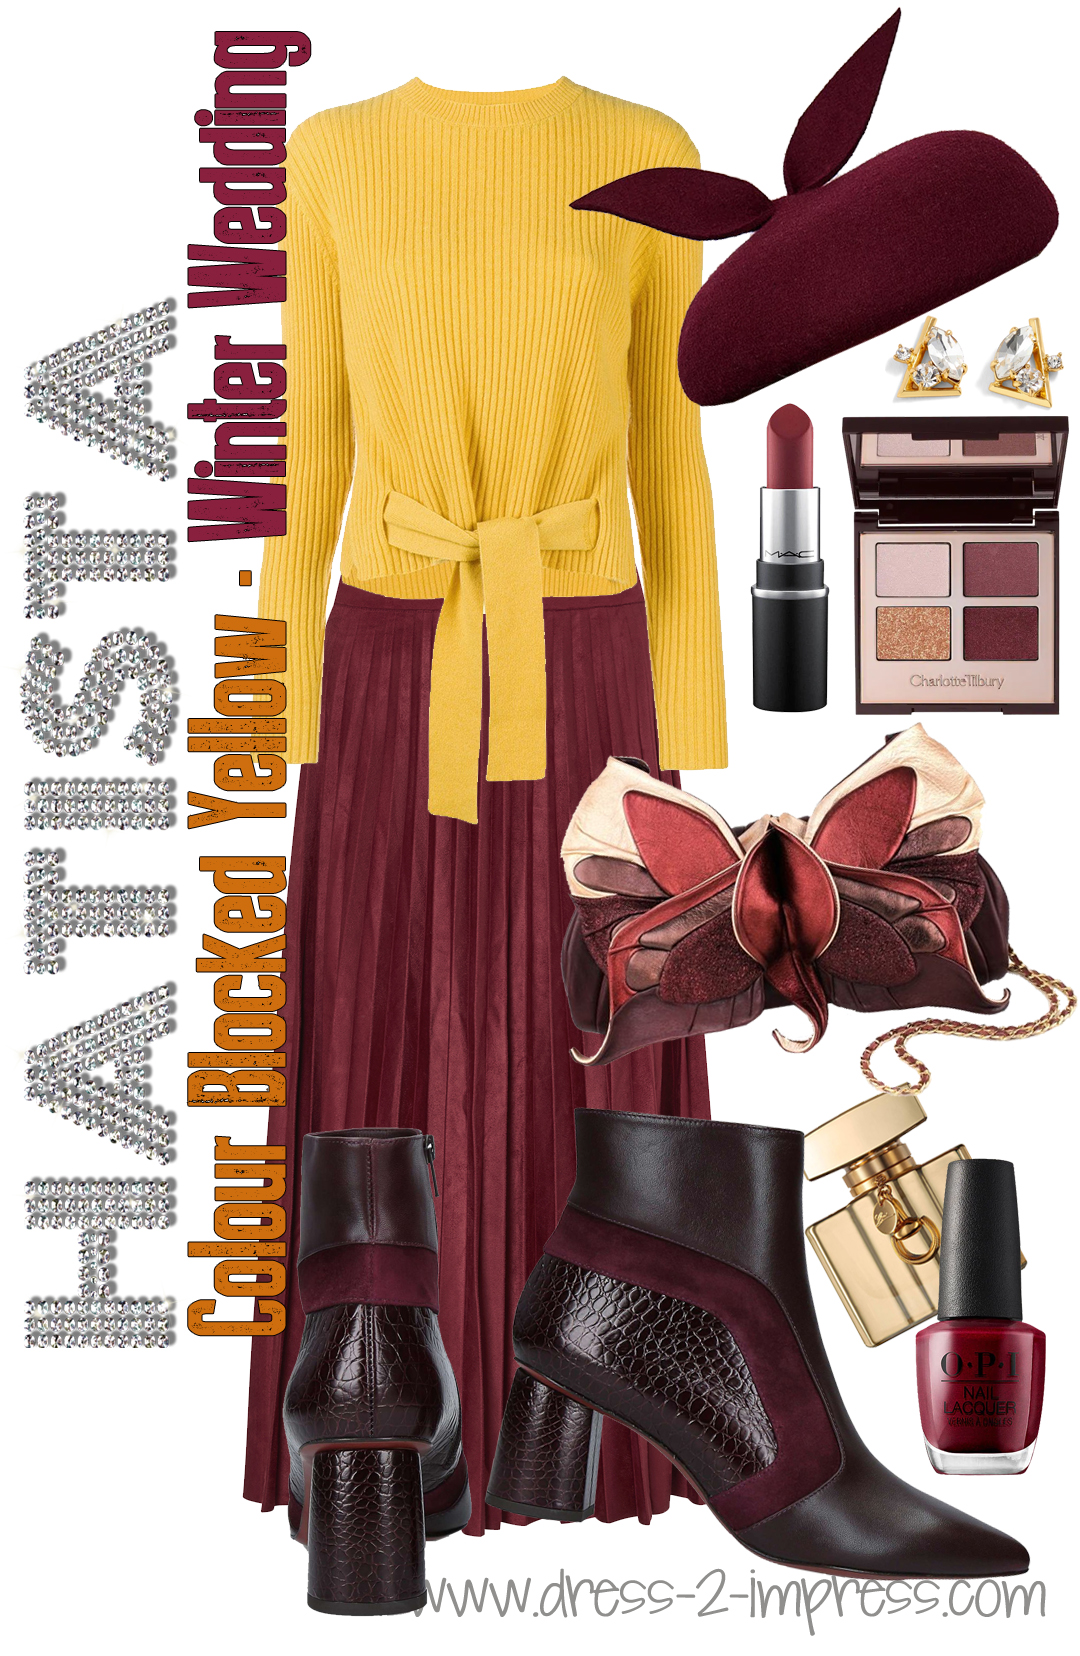 How to dress for a Winter Wedding. Burgundy and Mustard Yellow Outfits. What to wear to a Winter Wedding. Winter Wedding Guests outfits. How to dress for a winter wedding. How to wear Yellow. What to wear with Burgundy. What colours go with Burgundy.